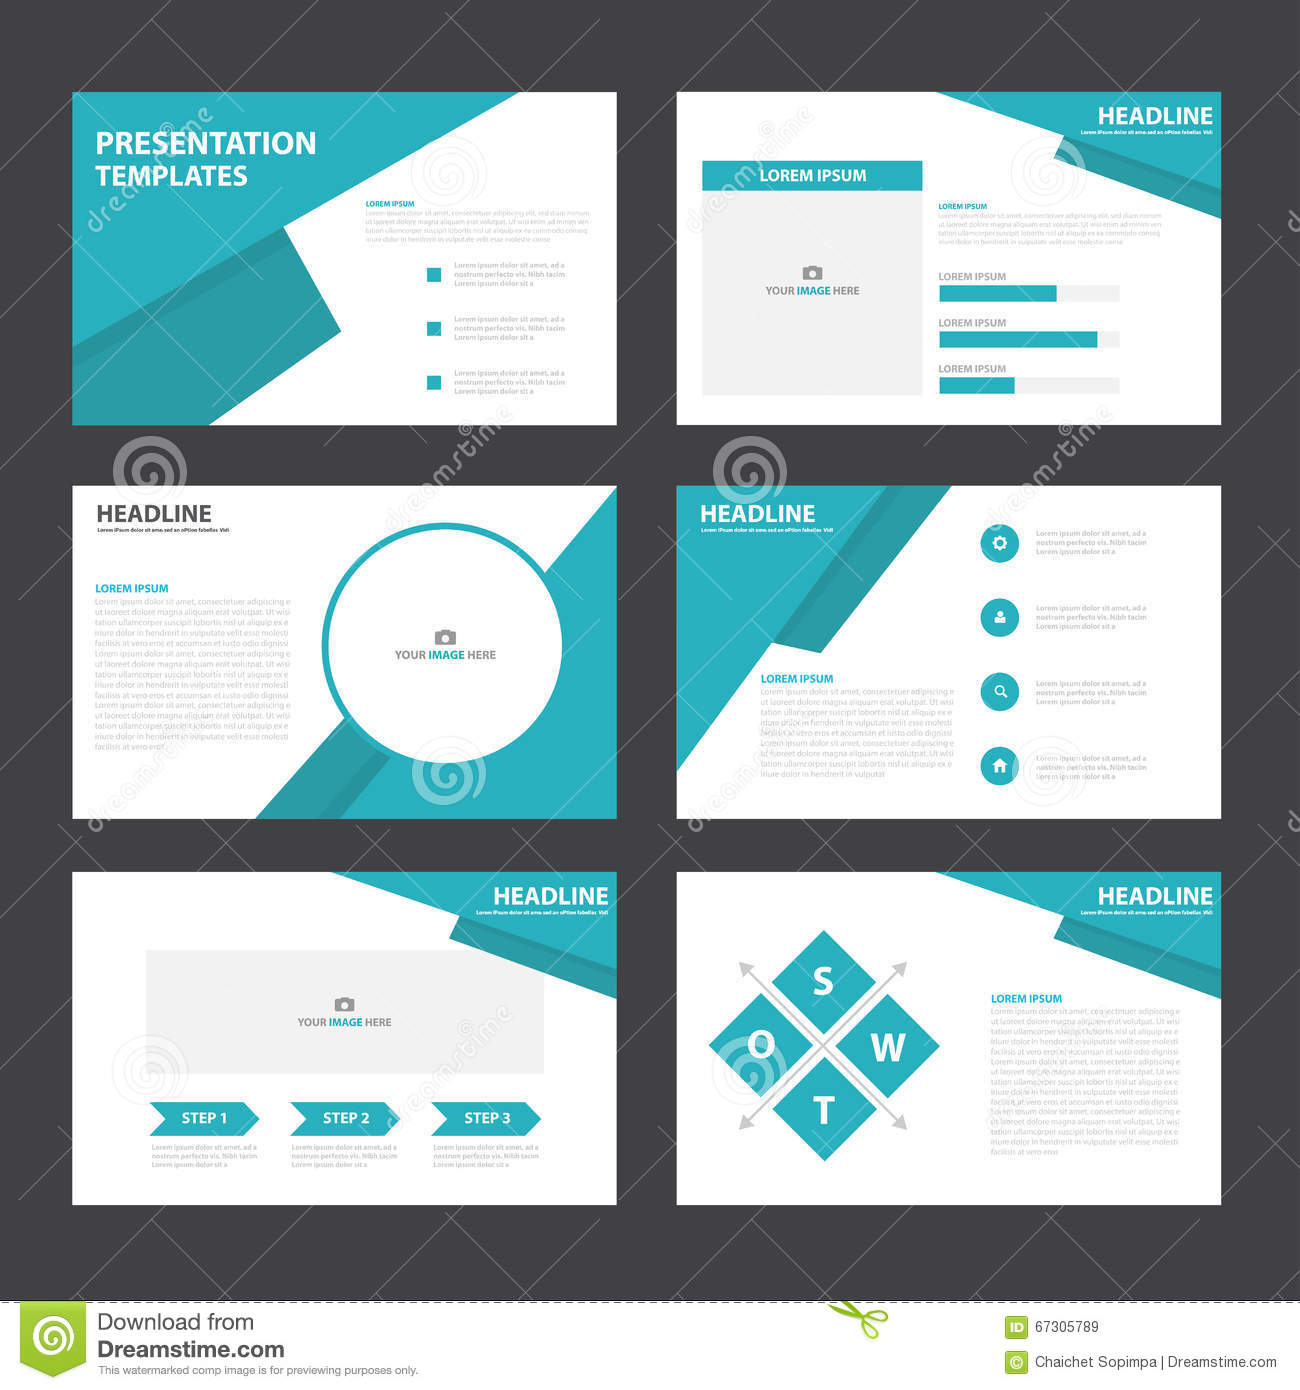 Infographic template for pages